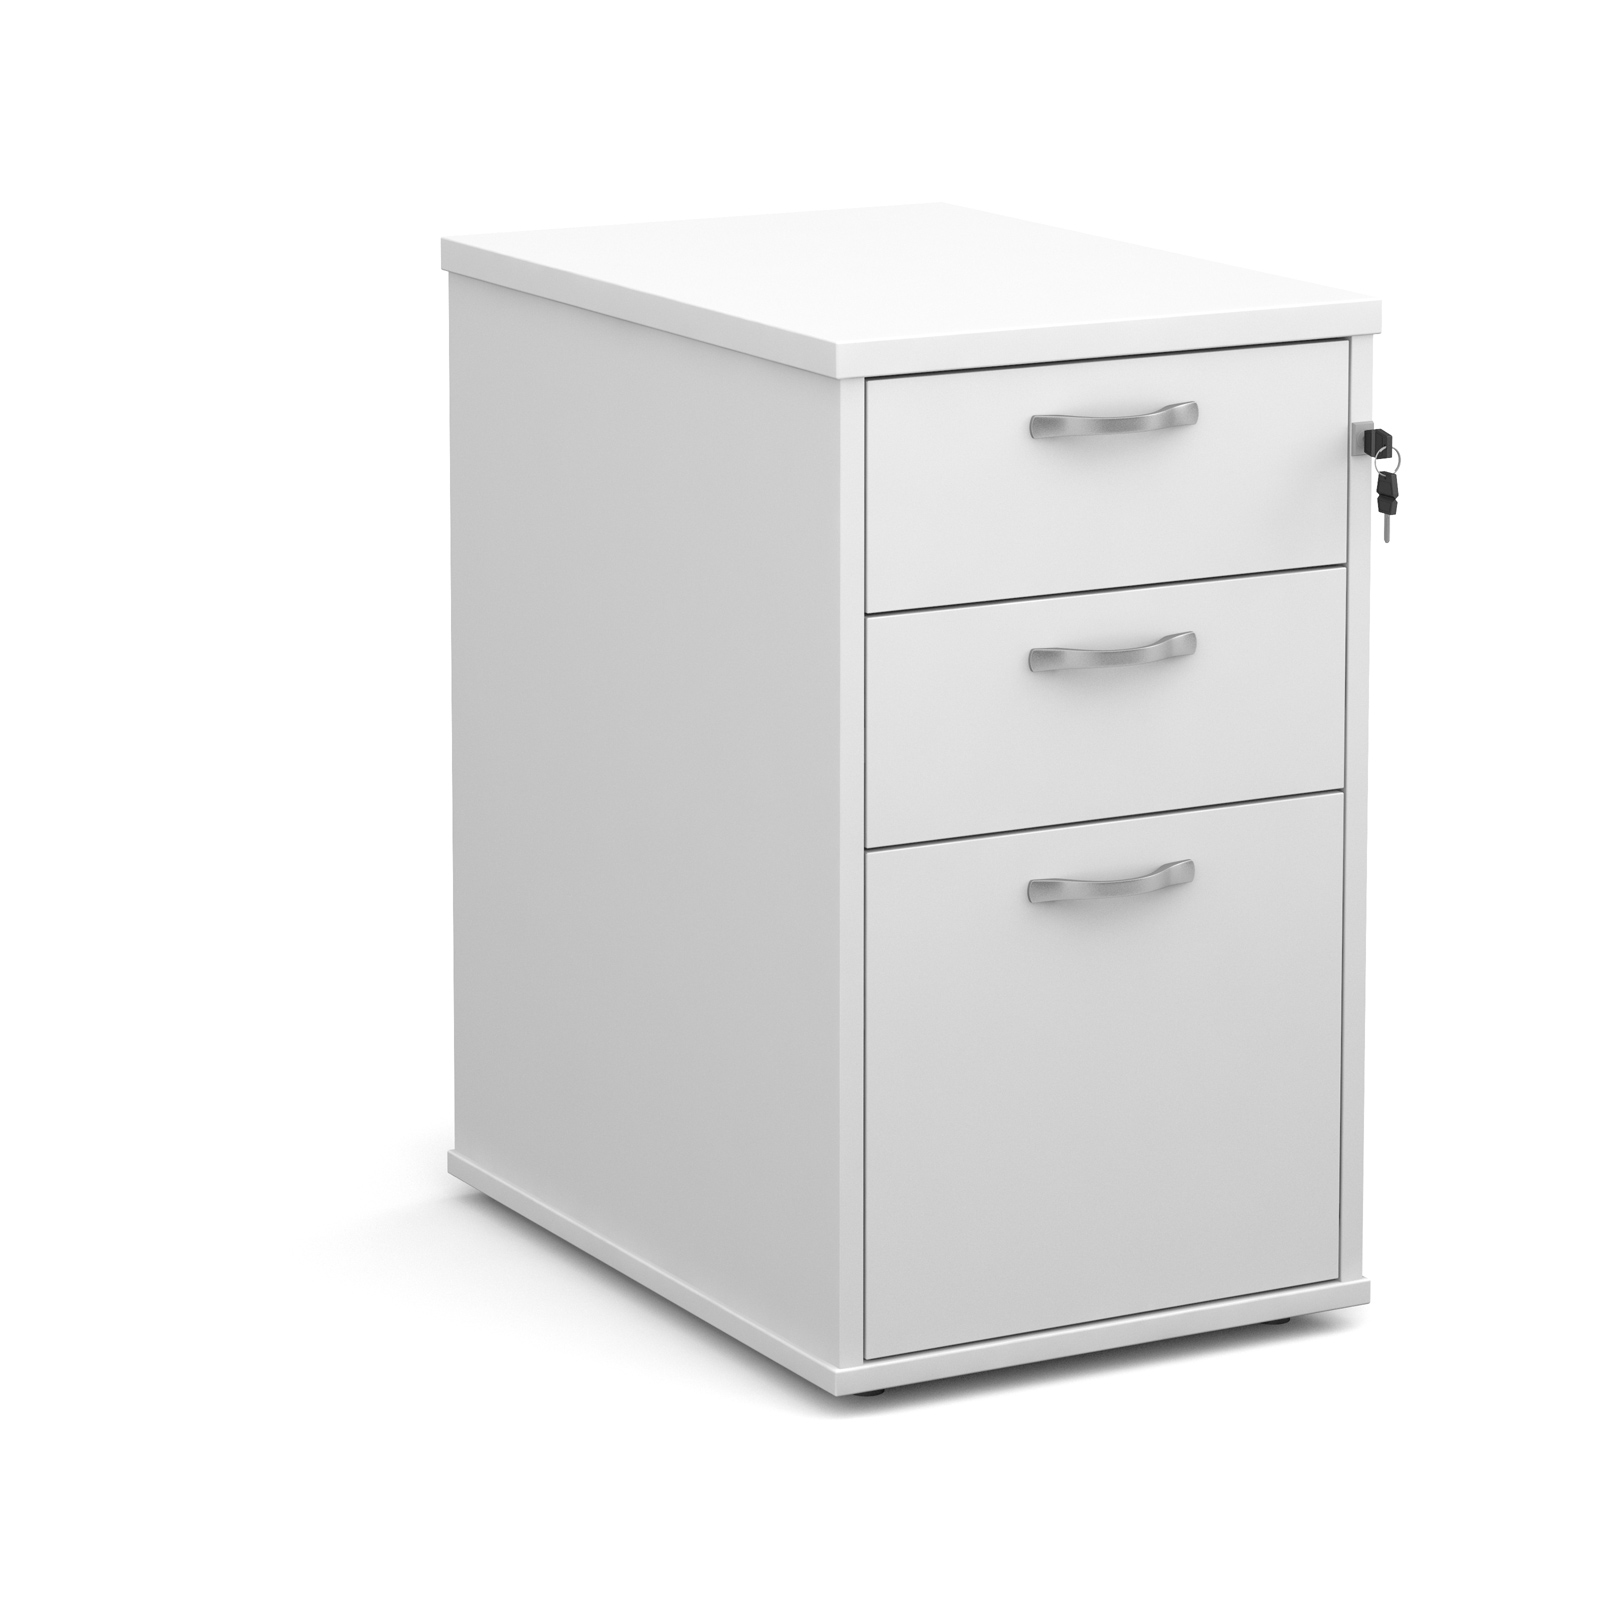 600mm Desk High 3 Drawer Pedestal in white